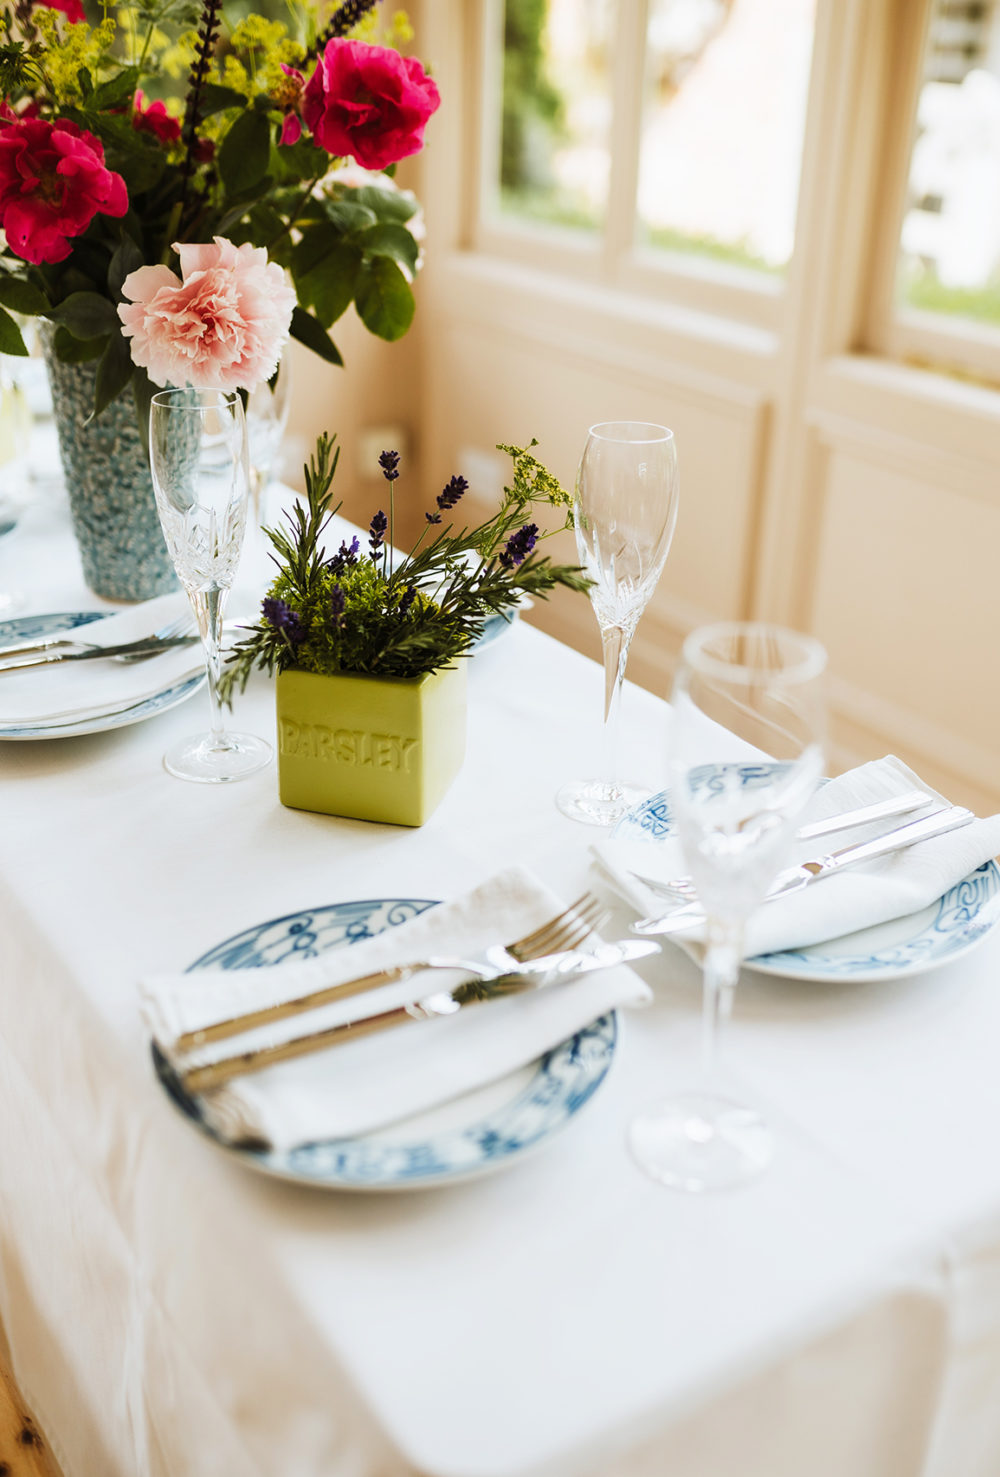 Country house table set for lunch